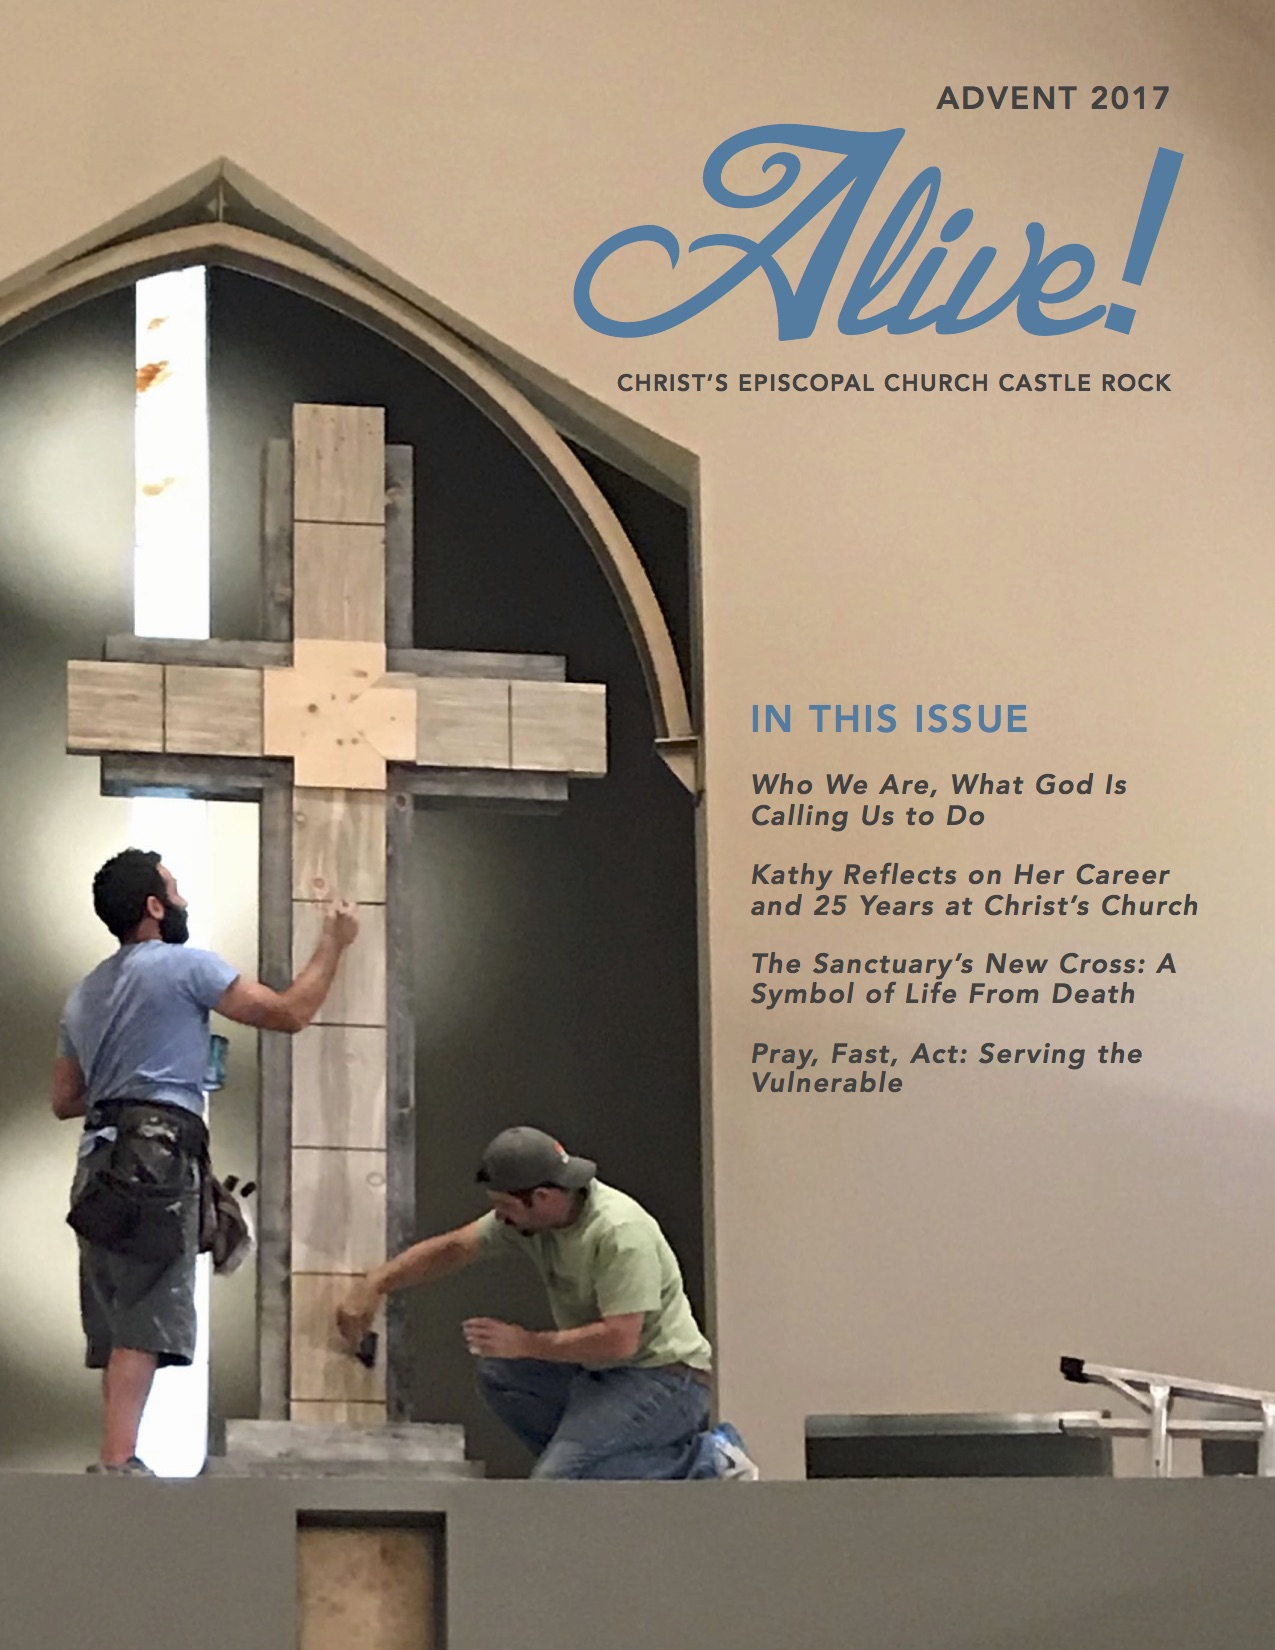 Christs Episcopal Church Alive Advent 2017